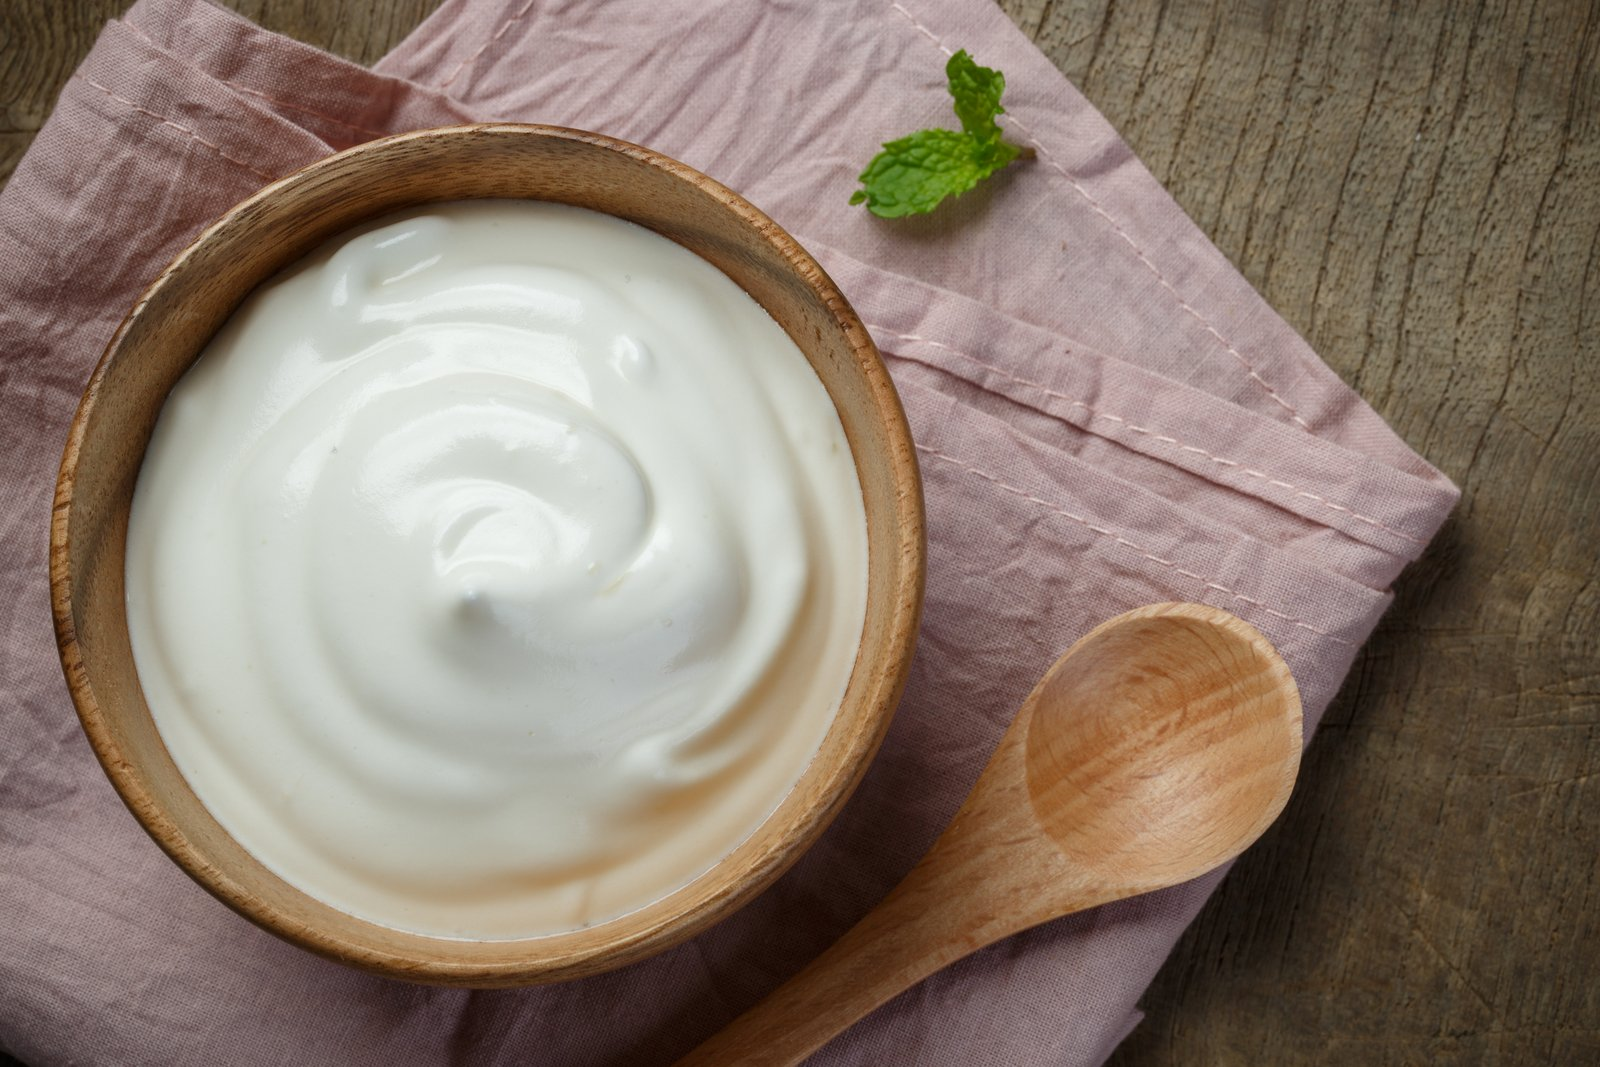 How To Make Homemade Yogurt - Curd by Archana's Kitchen